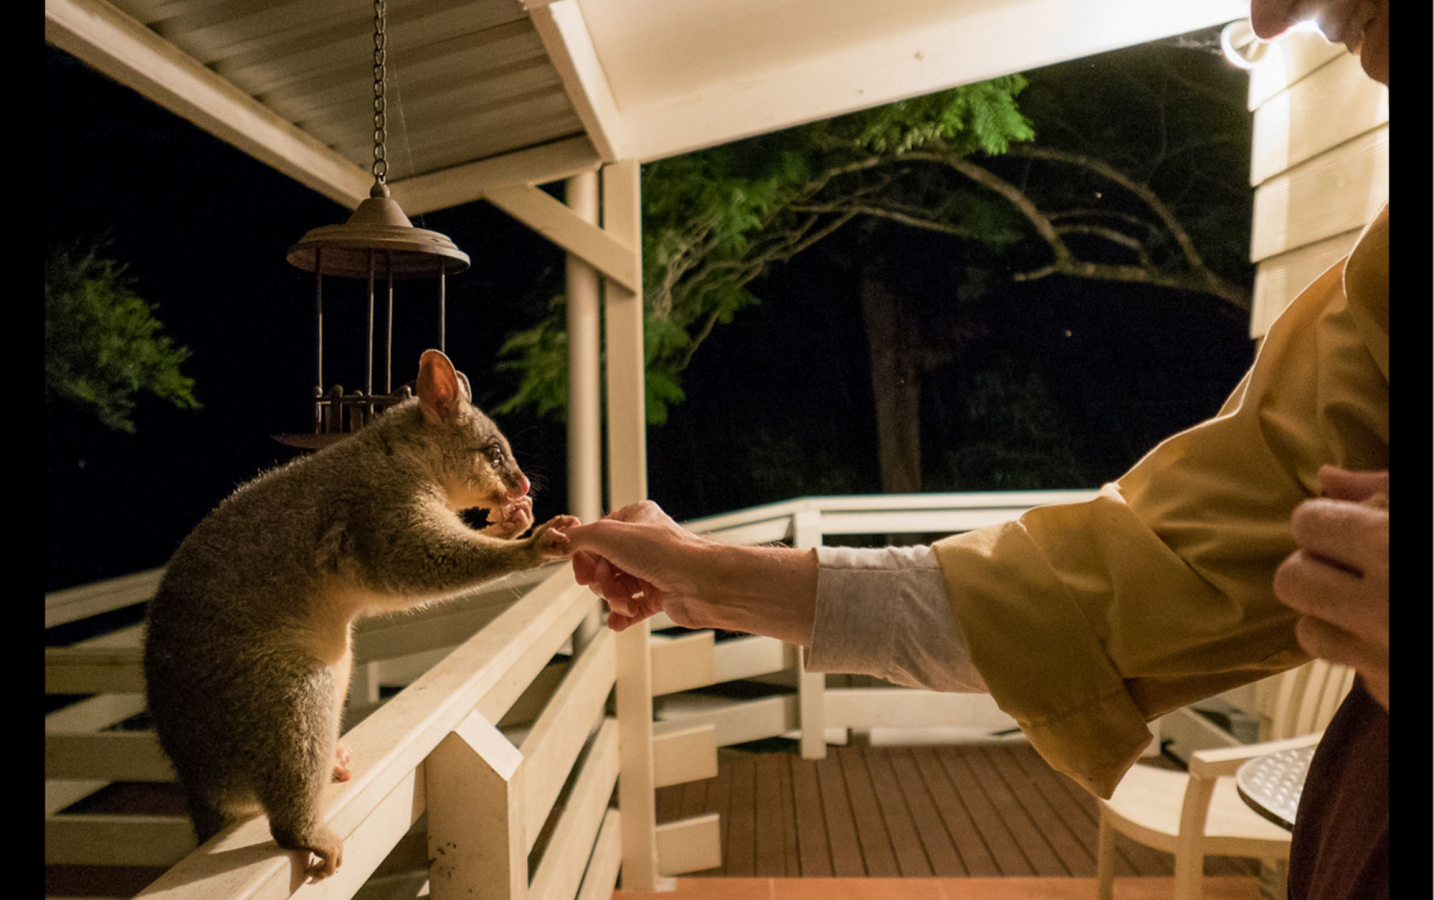 The first is a brush-tailed possum holding thumbs with a monk at night while the possum nibbles on a piece of apple. --Rev. Heng Sure